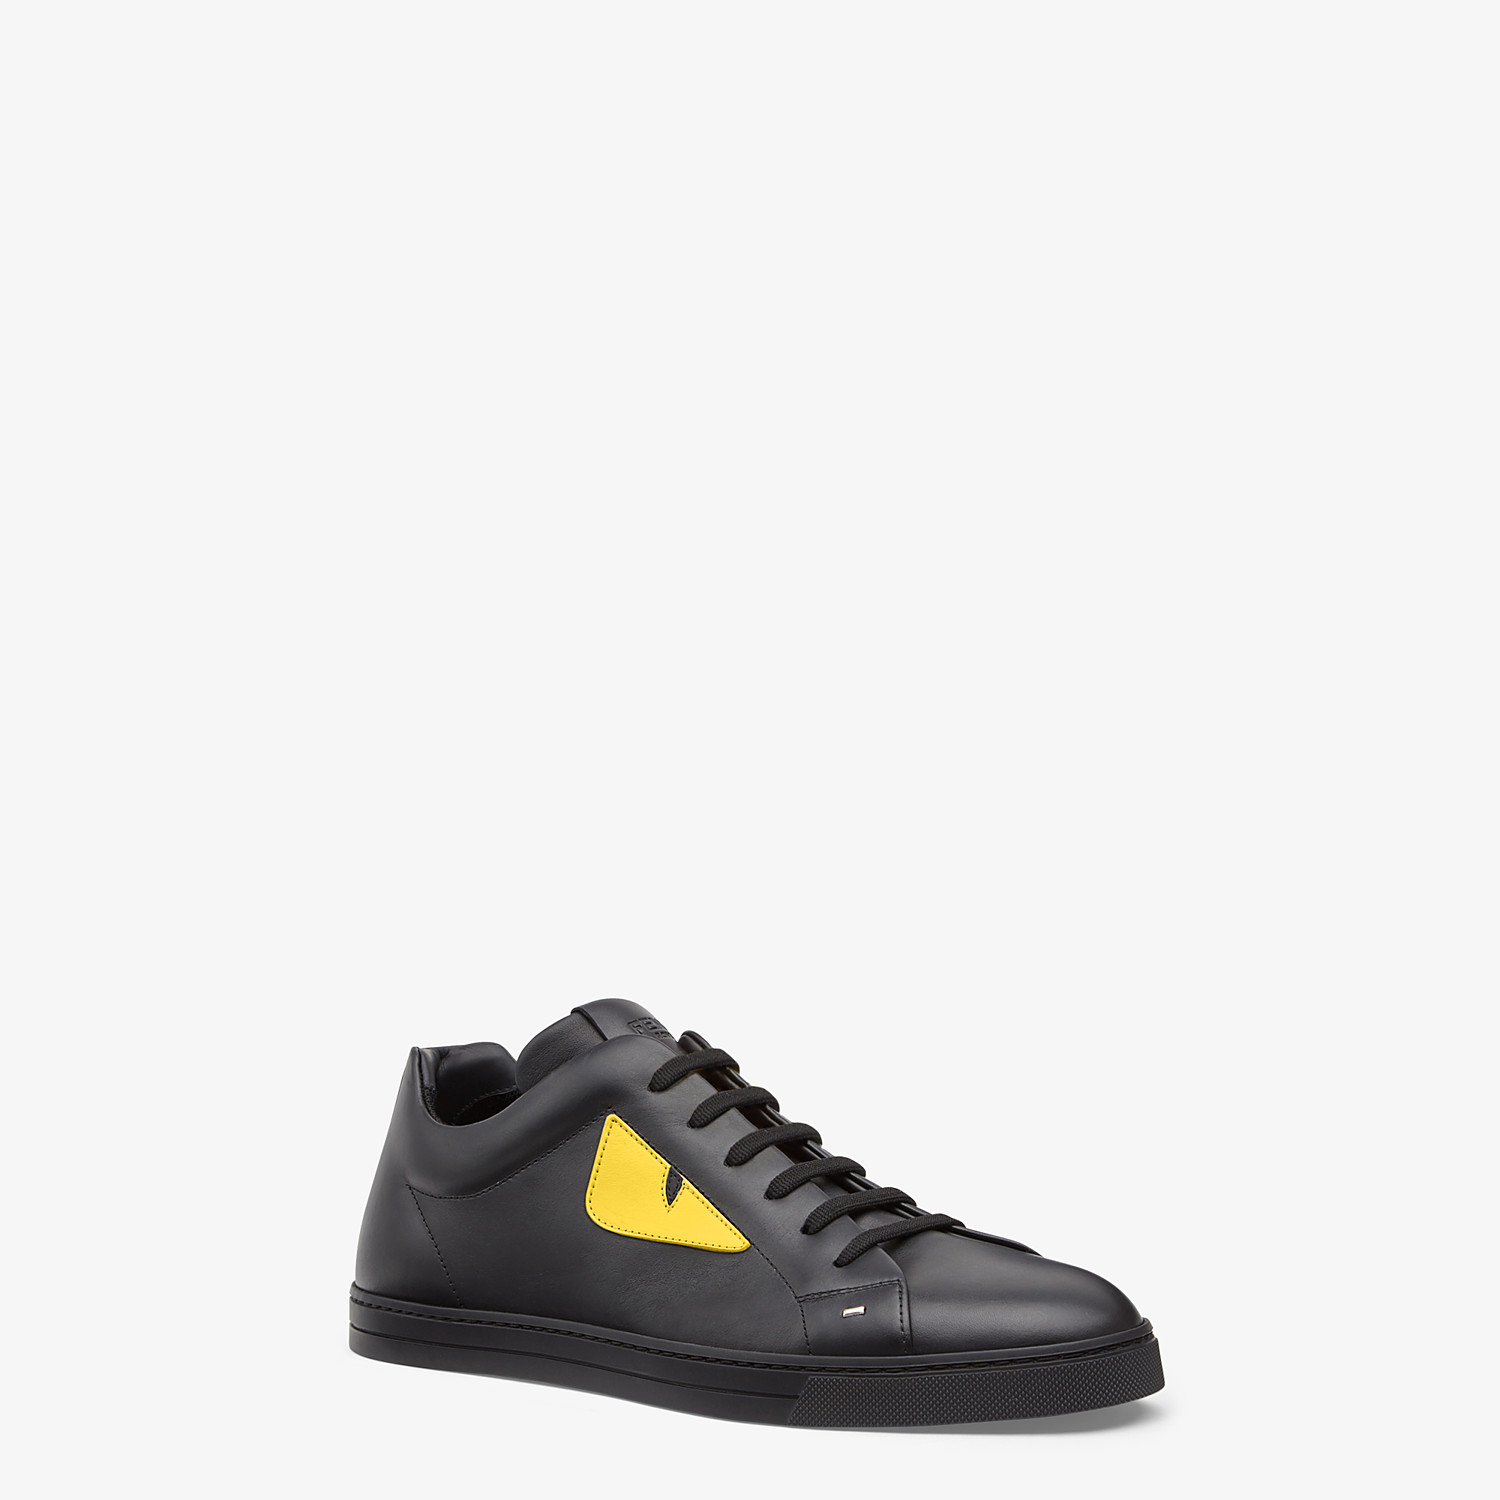 FENDI SNEAKERS - Black and yellow leather low-tops - view 2 detail